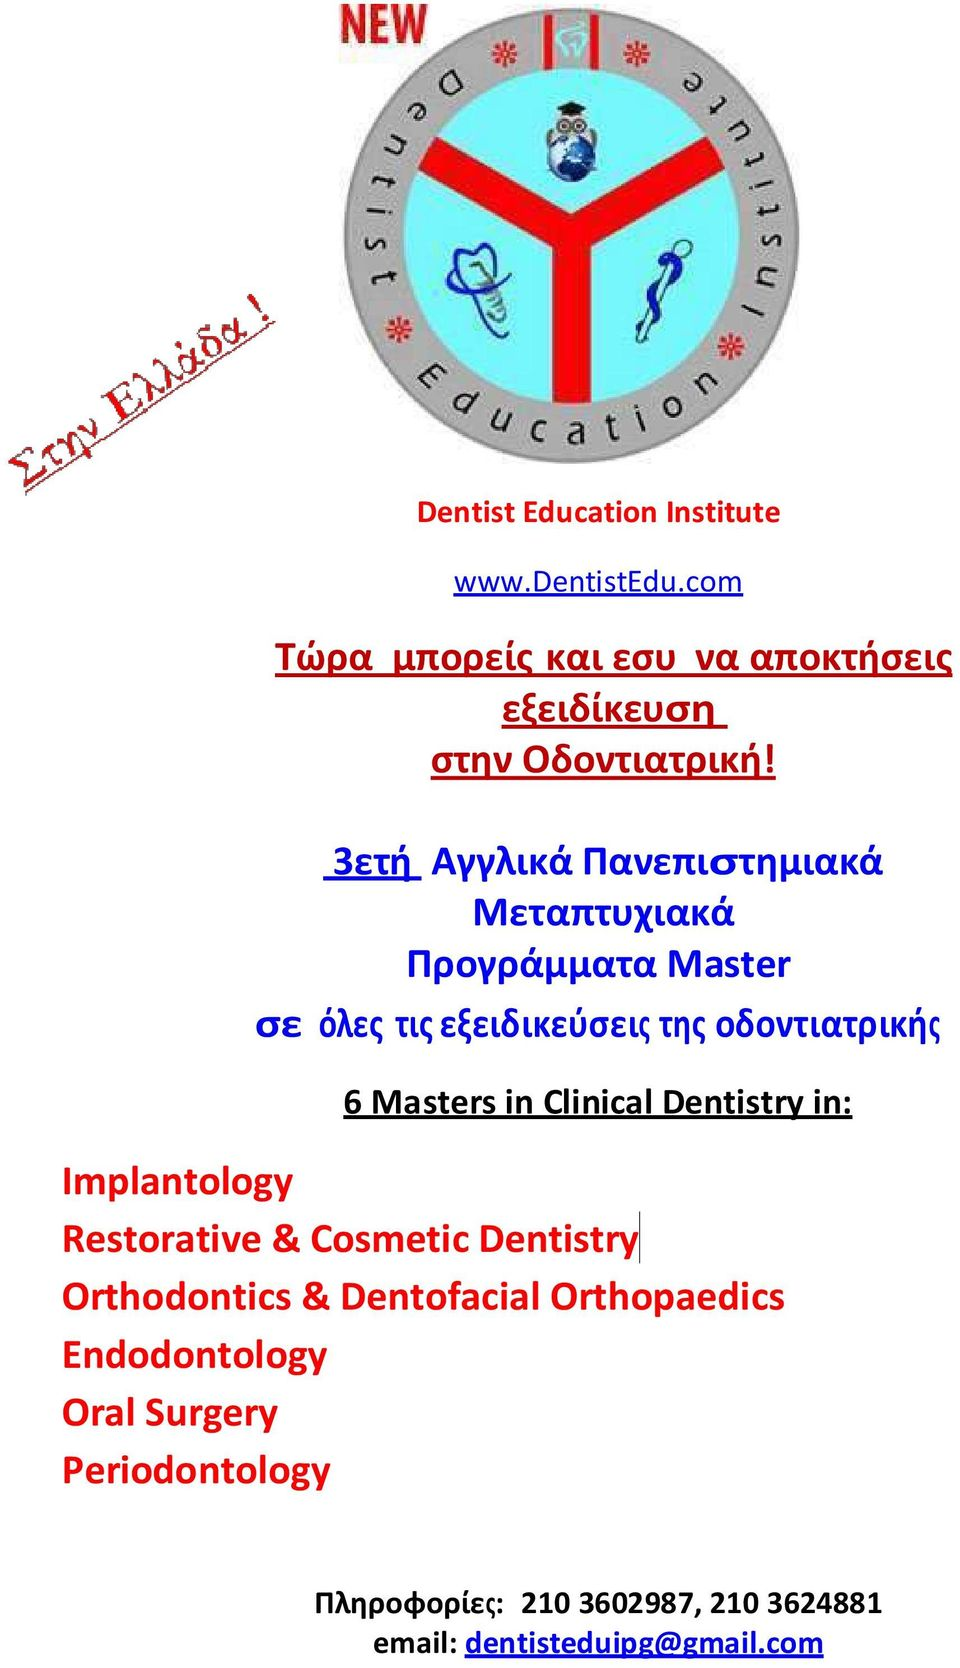 Masters in Clinical Dentistry in: Implantology Restorative & Cosmetic Dentistry Orthodontics & Dentofacial